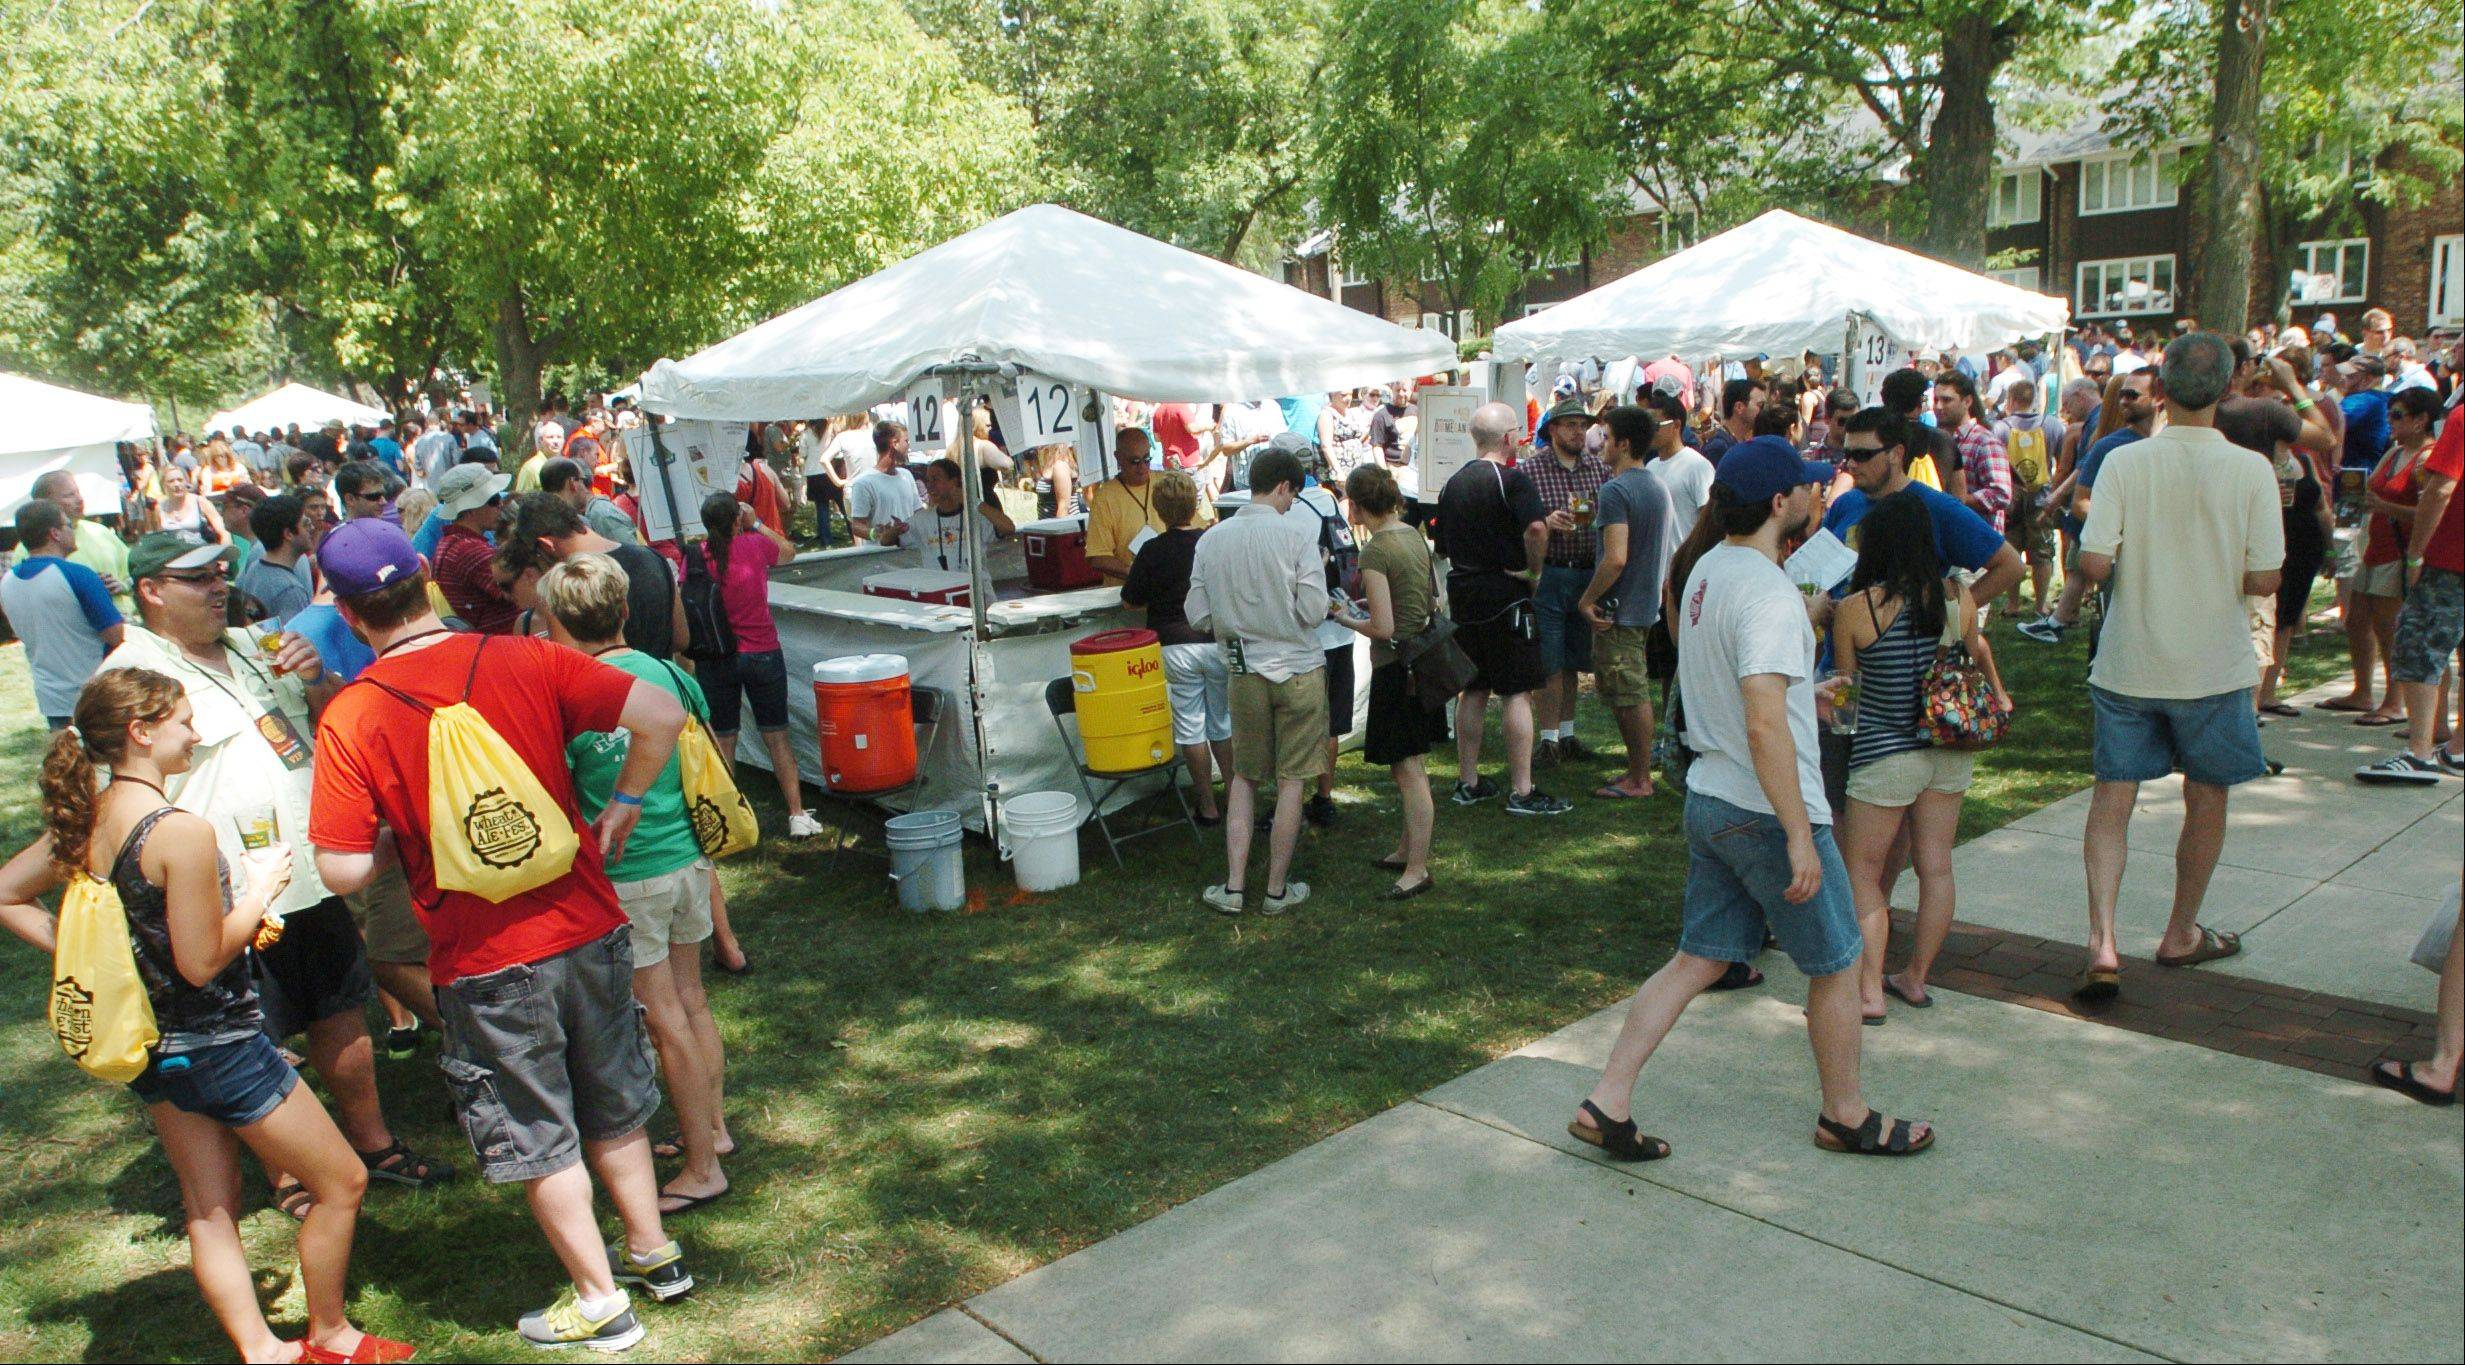 Beer lovers flock to the second annual Wheaton Ale Fest Saturday at Memorial Park. The event moved from its previous location on Front Street to the park for more space and shade.